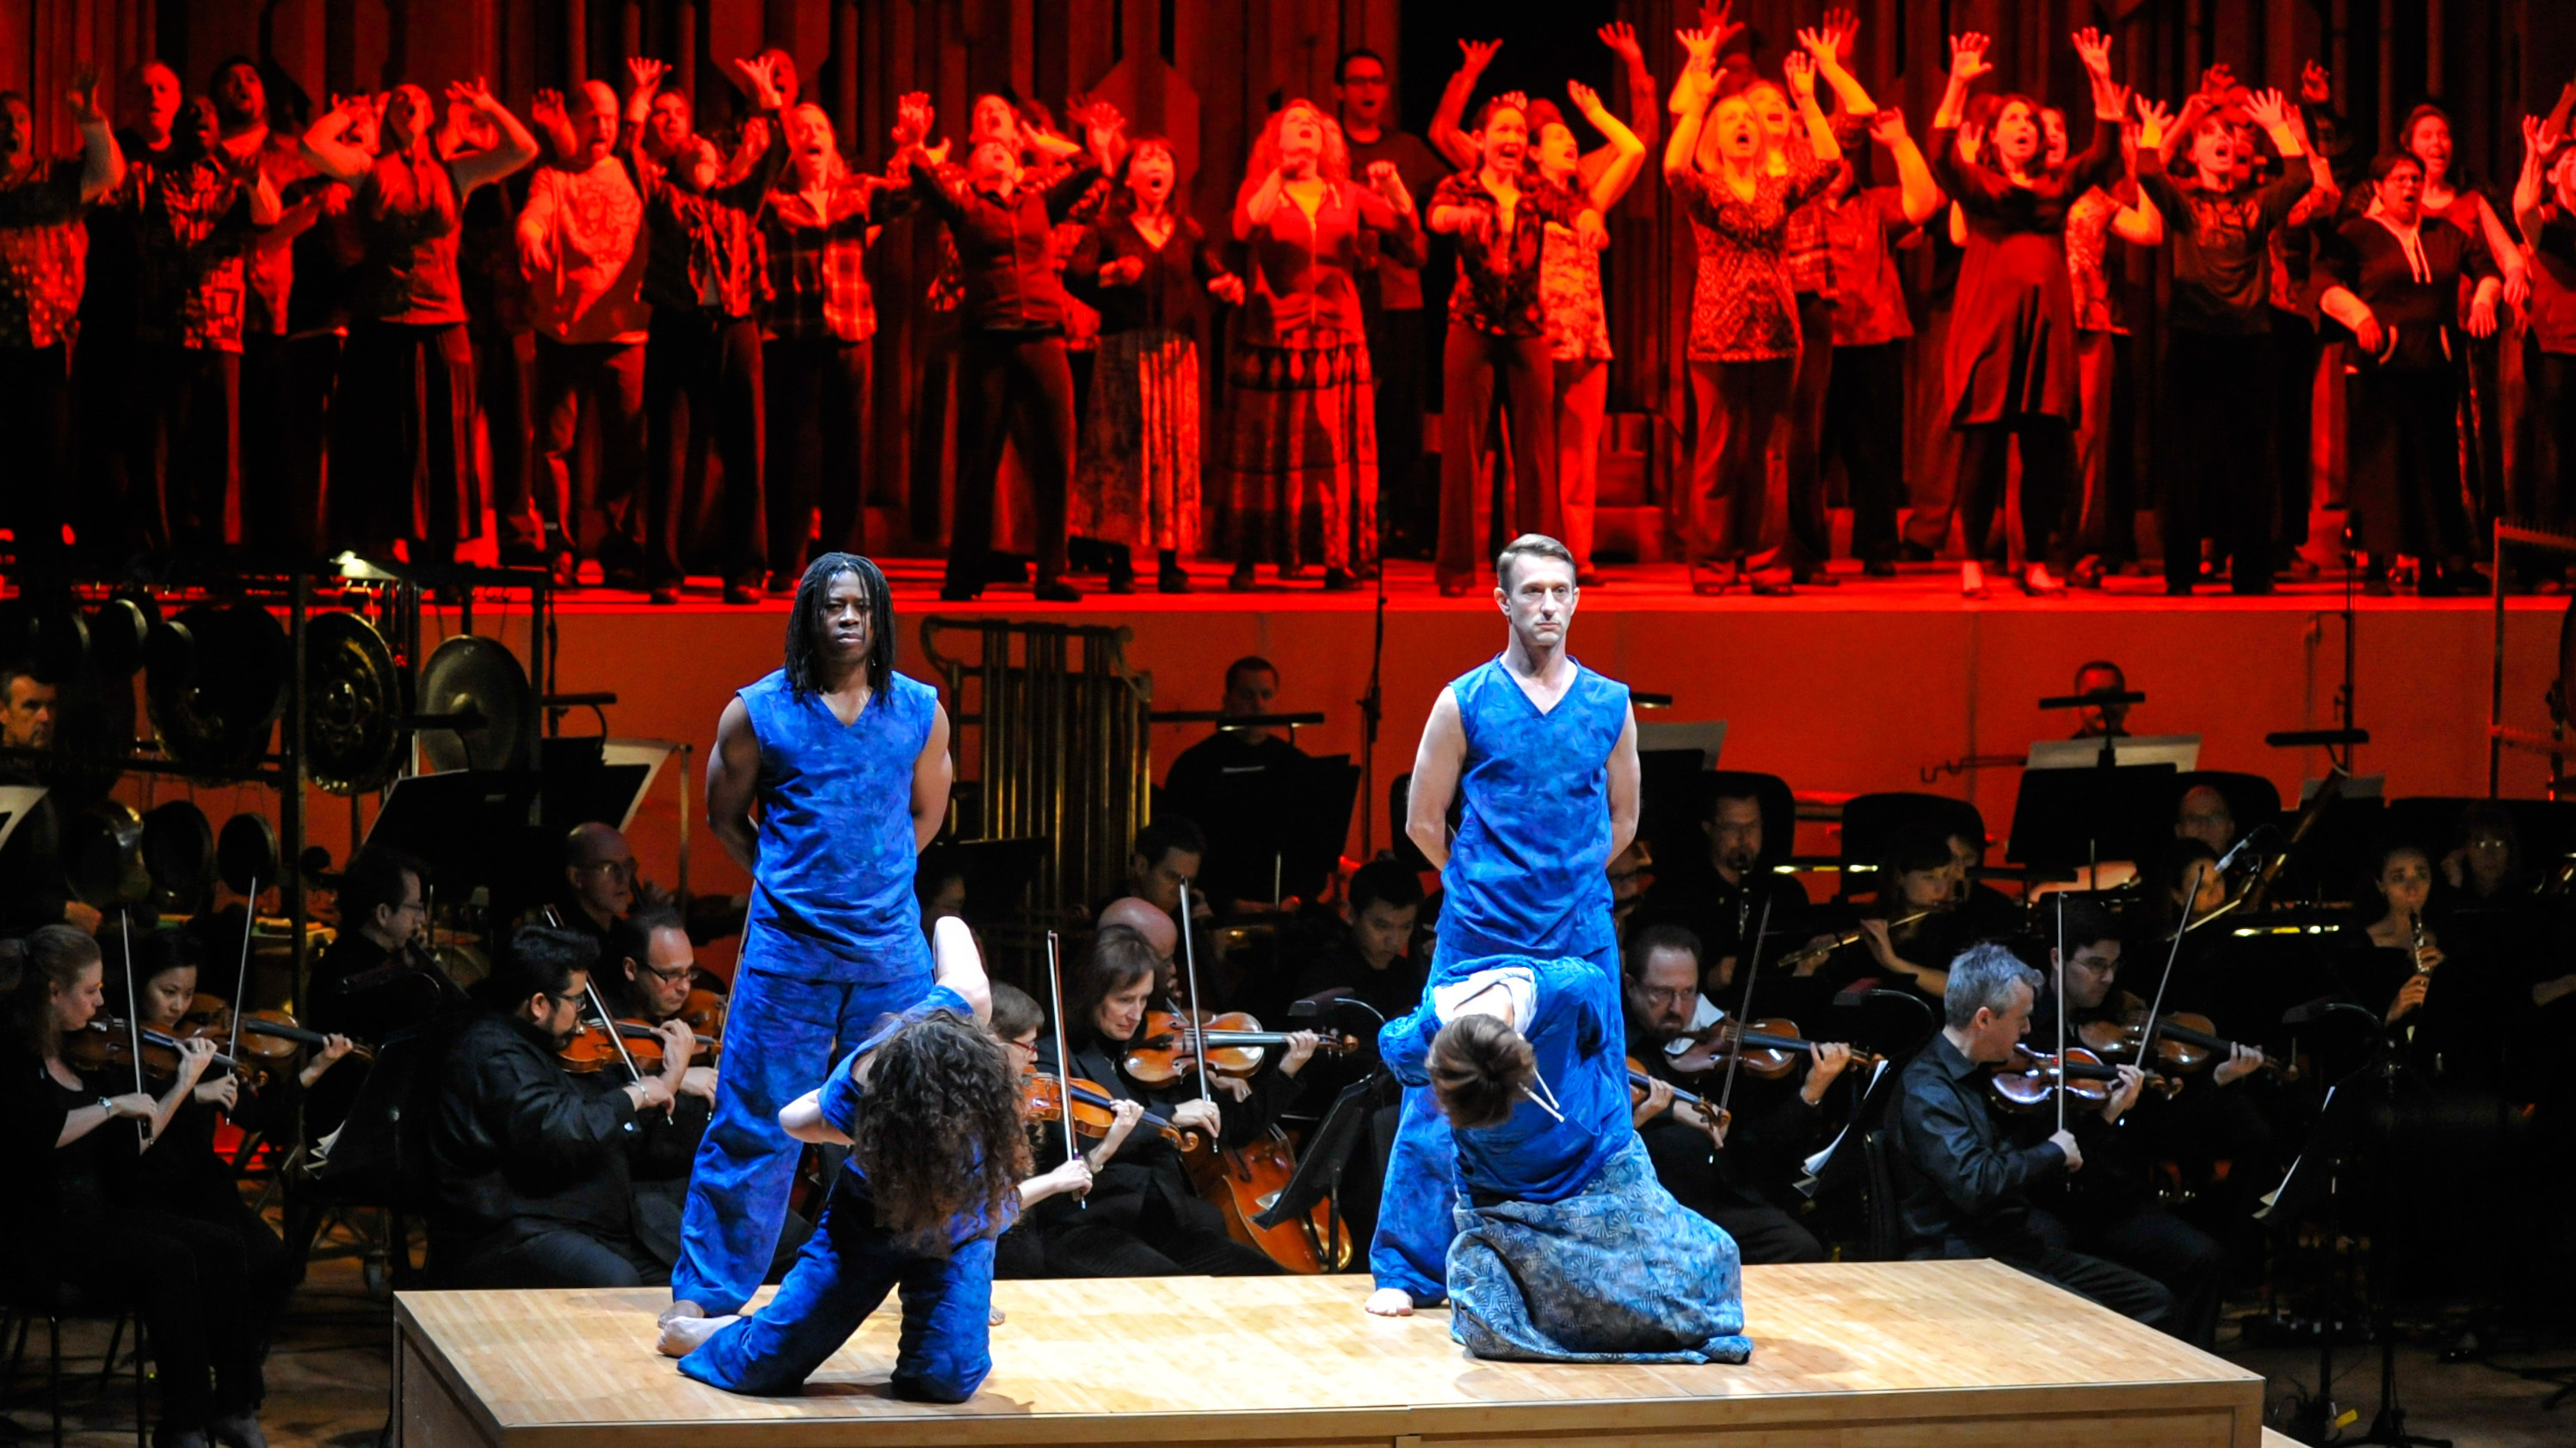 John Adams' Psychedelic Oratorio Gives Voice To 'The Other Mary'